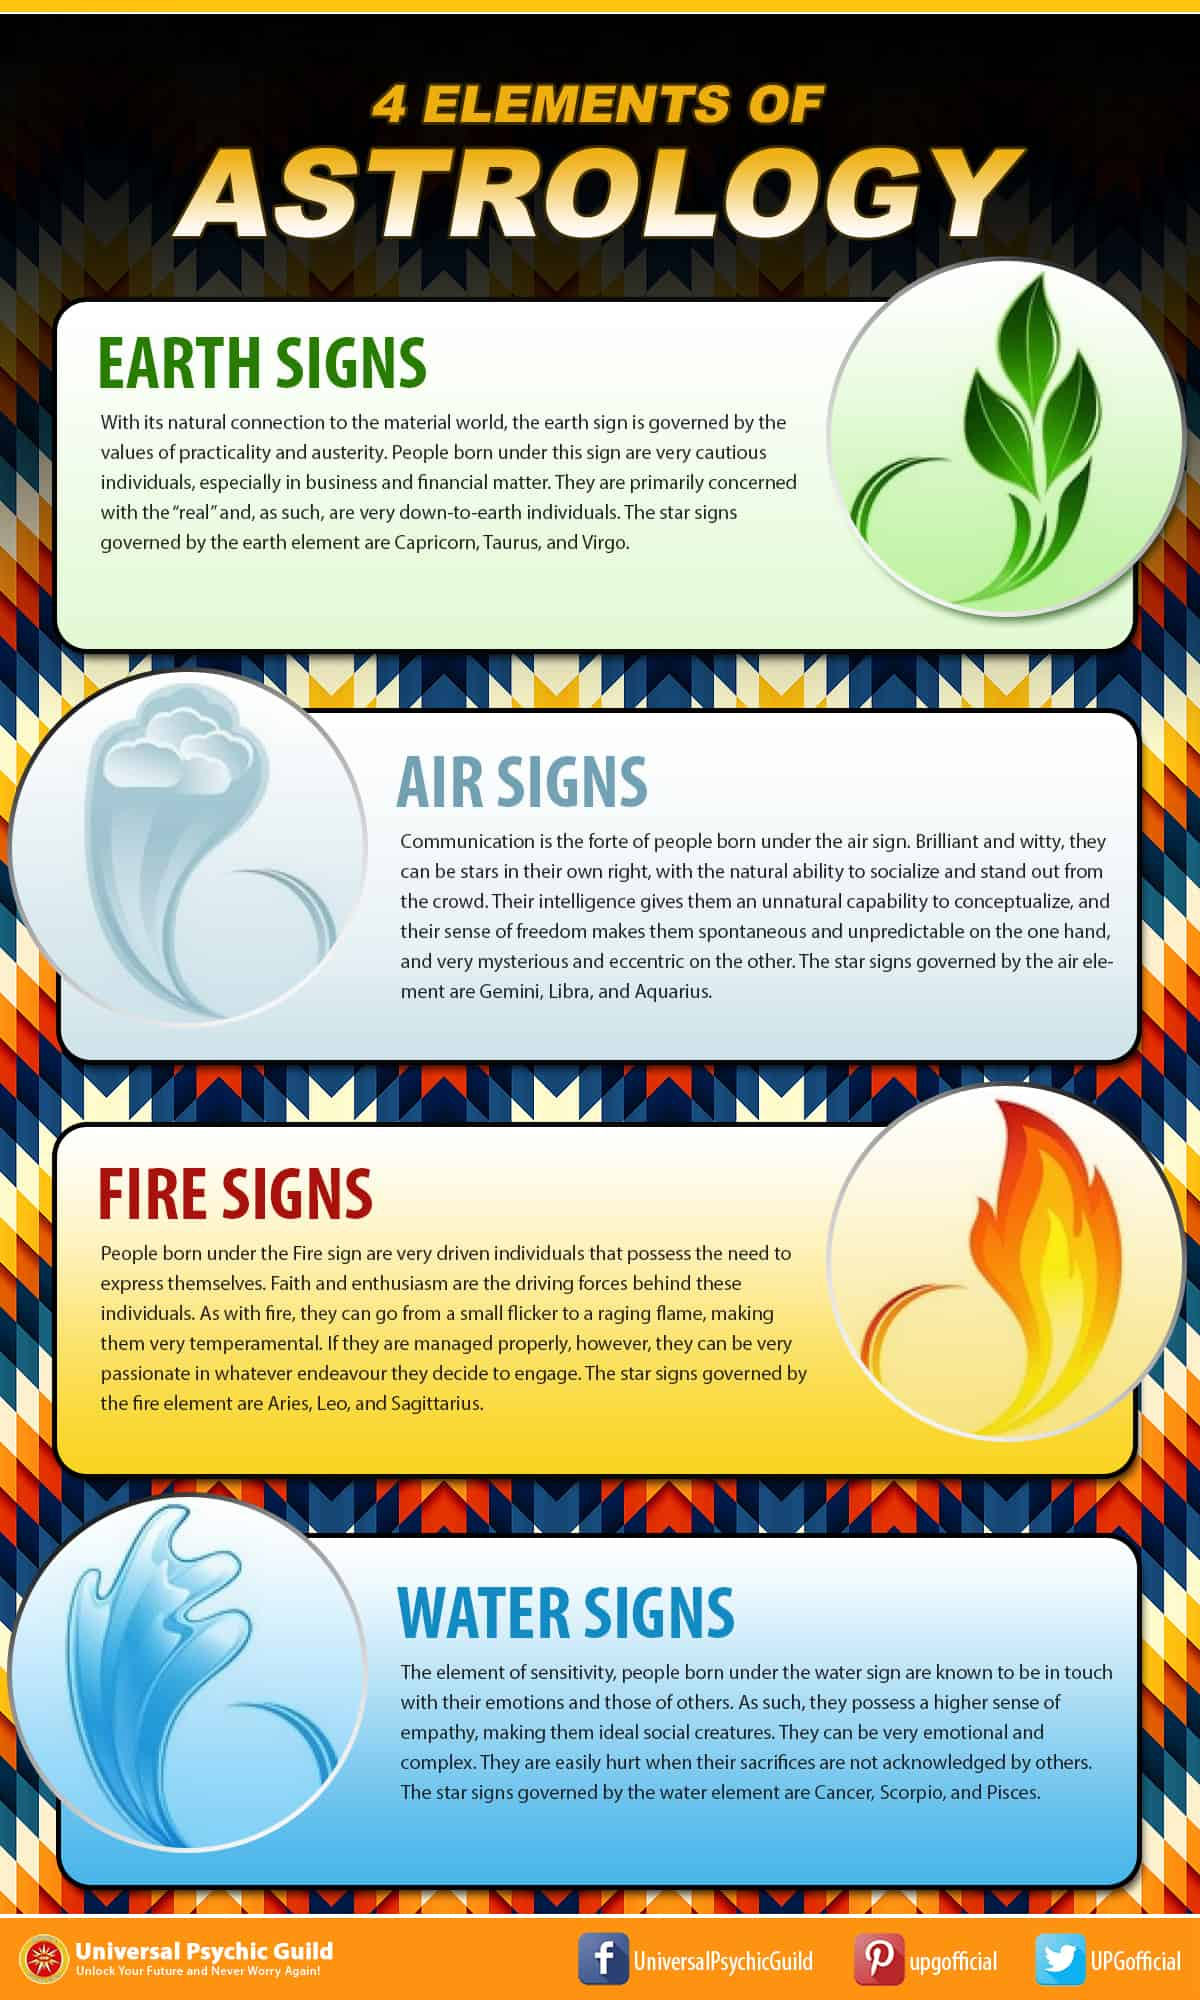 The four elements describe people's personality traits